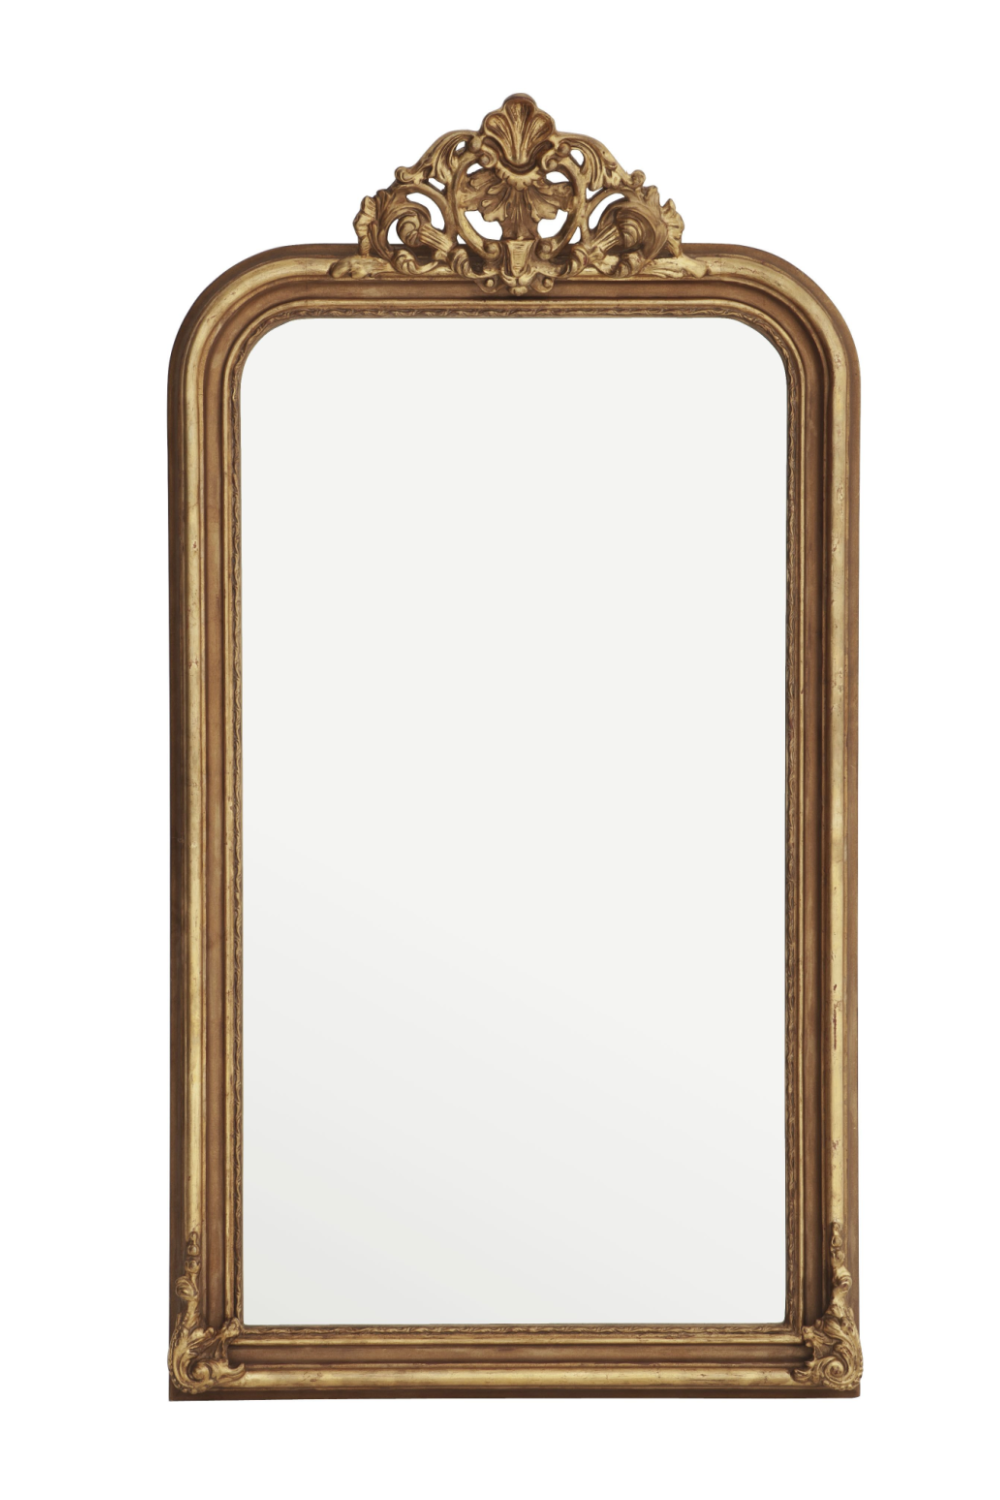 Antique Gold Leaf Guilded Mirror | Eichholtz Boulogne